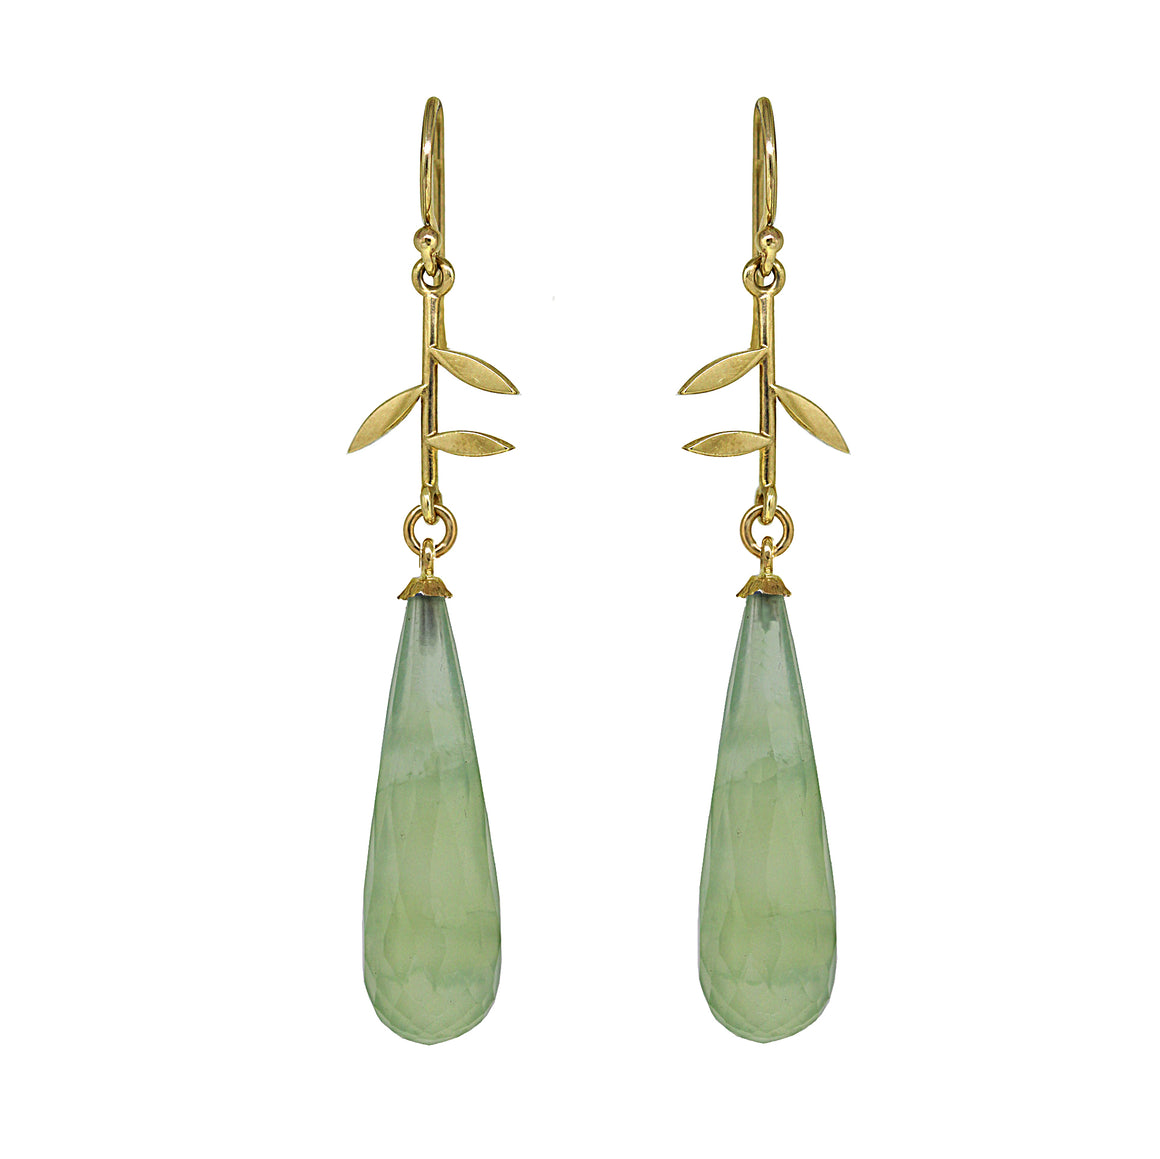 Prehnite Jardin earrings in gold